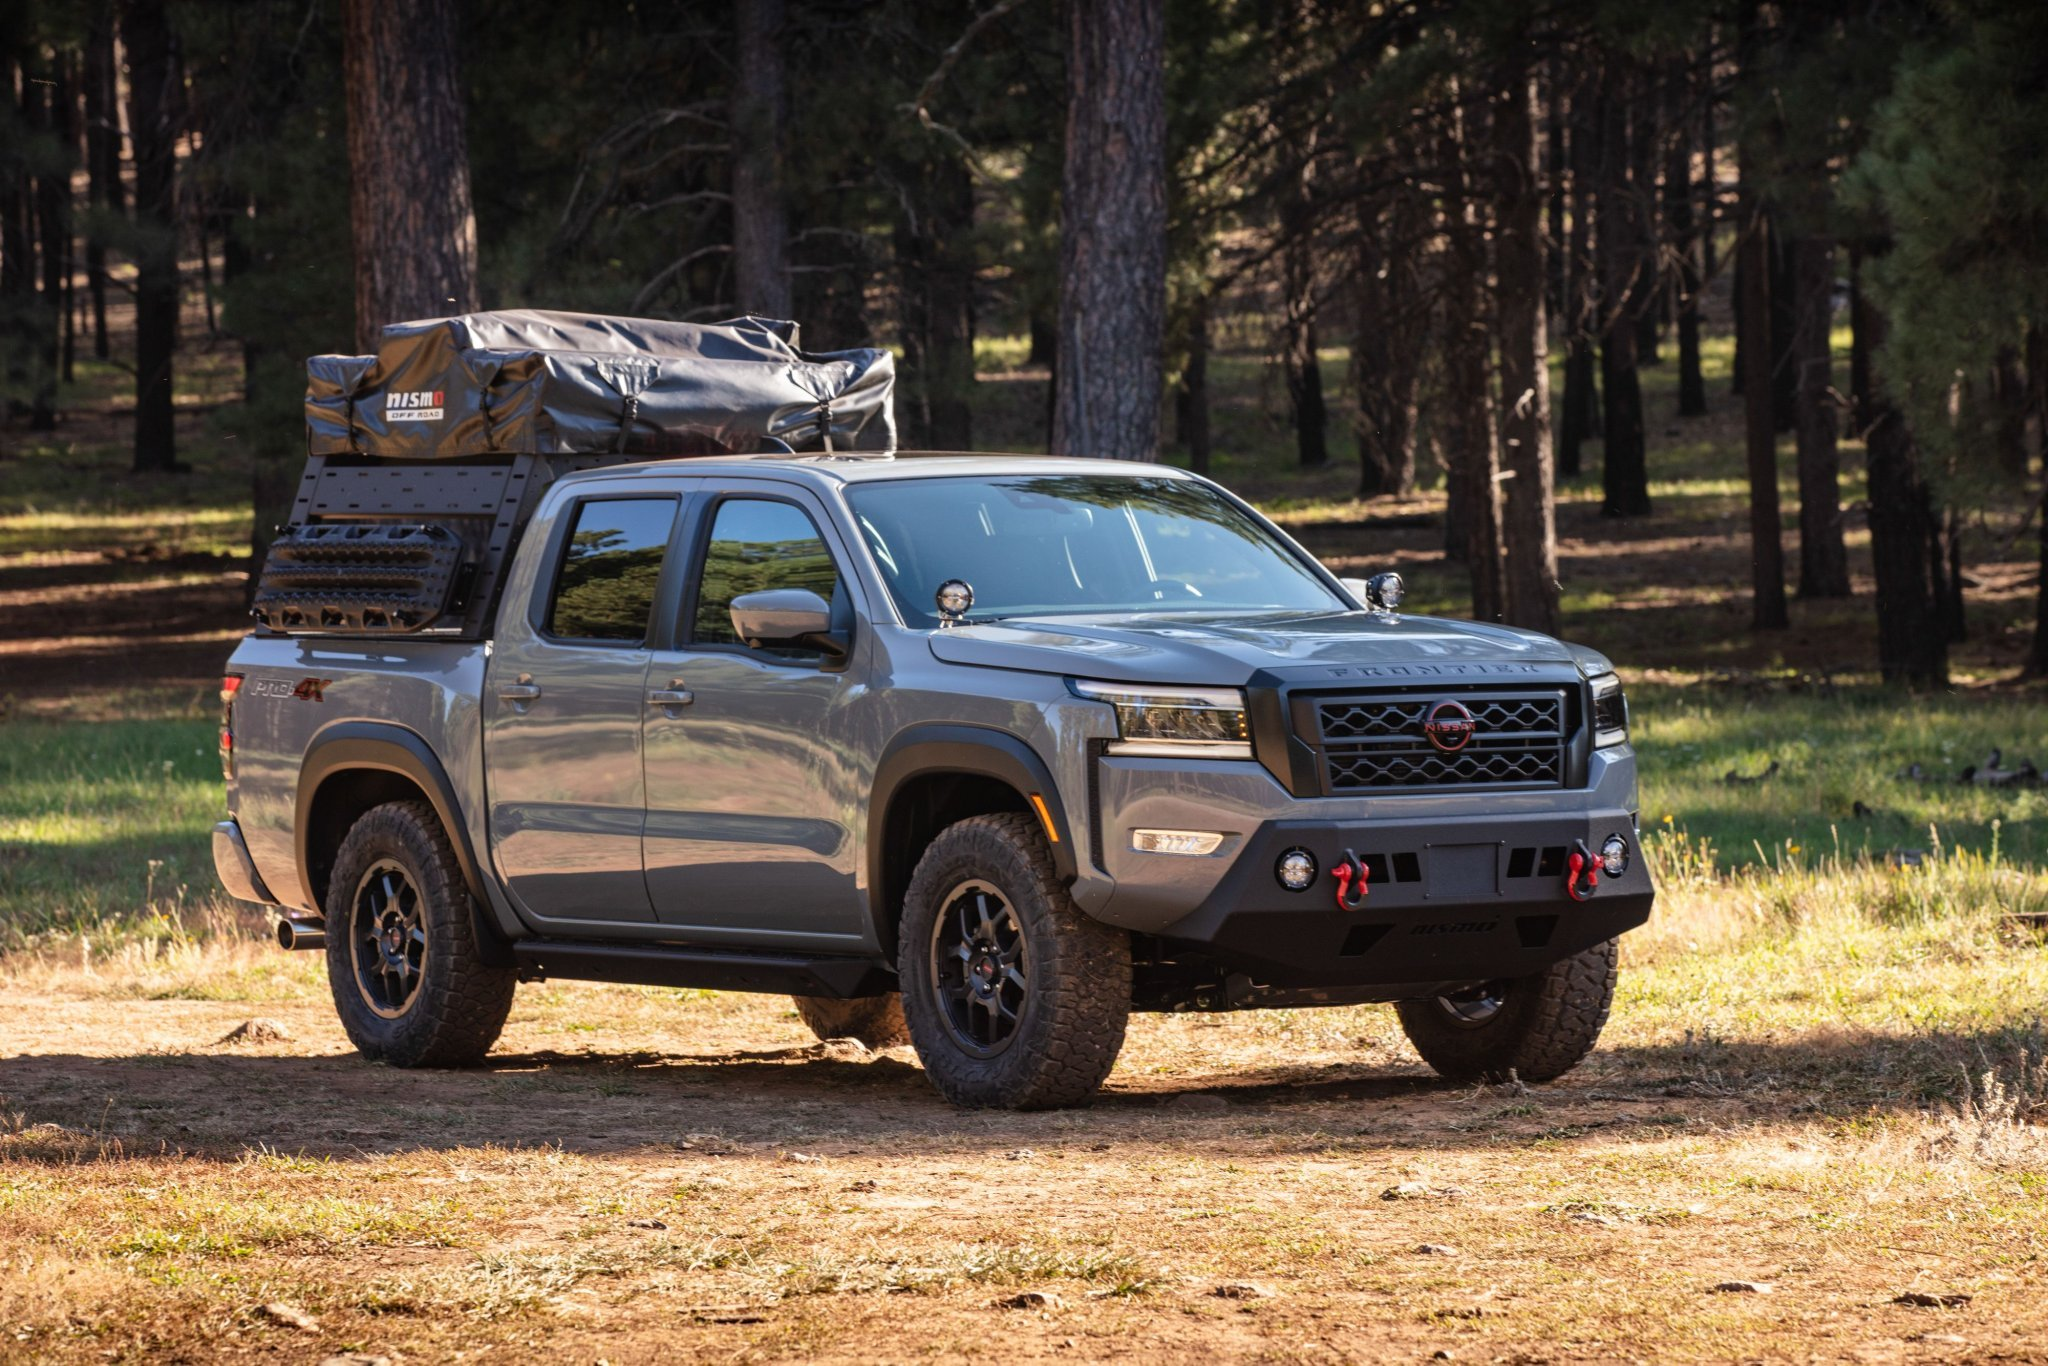 Nissan Now Sells Super Cool Overlanding Accessories for the Frontier